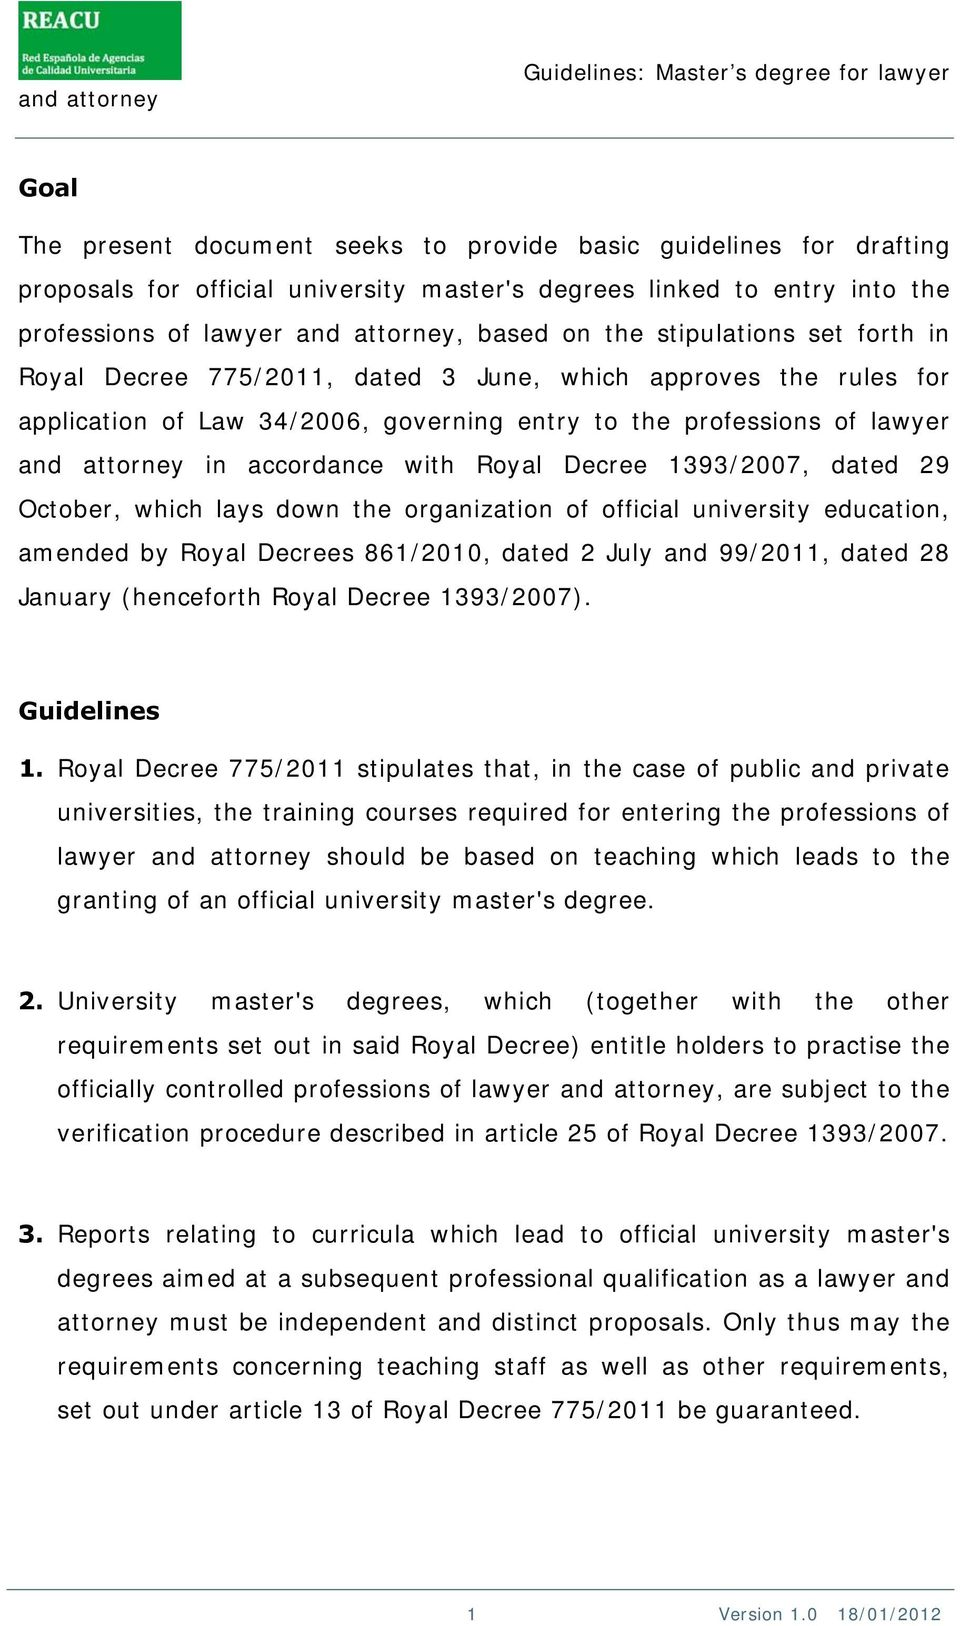 Royal Decree 1393/2007, dated 29 October, which lays down the organization of official university education, amended by Royal Decrees 861/2010, dated 2 July and 99/2011, dated 28 January (henceforth